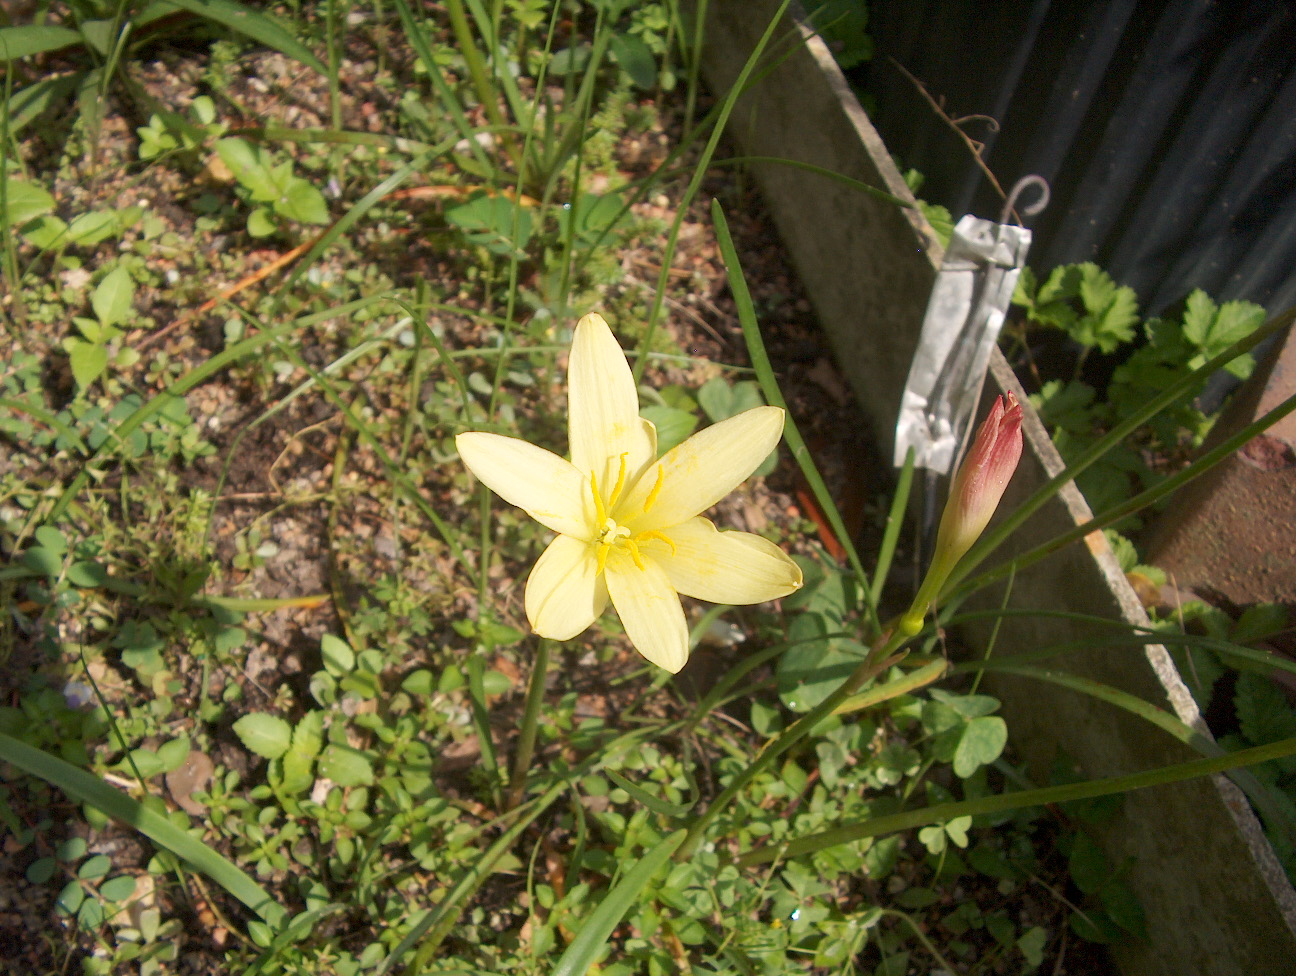 Zephyranthes primulina / Yellow Rain Lily